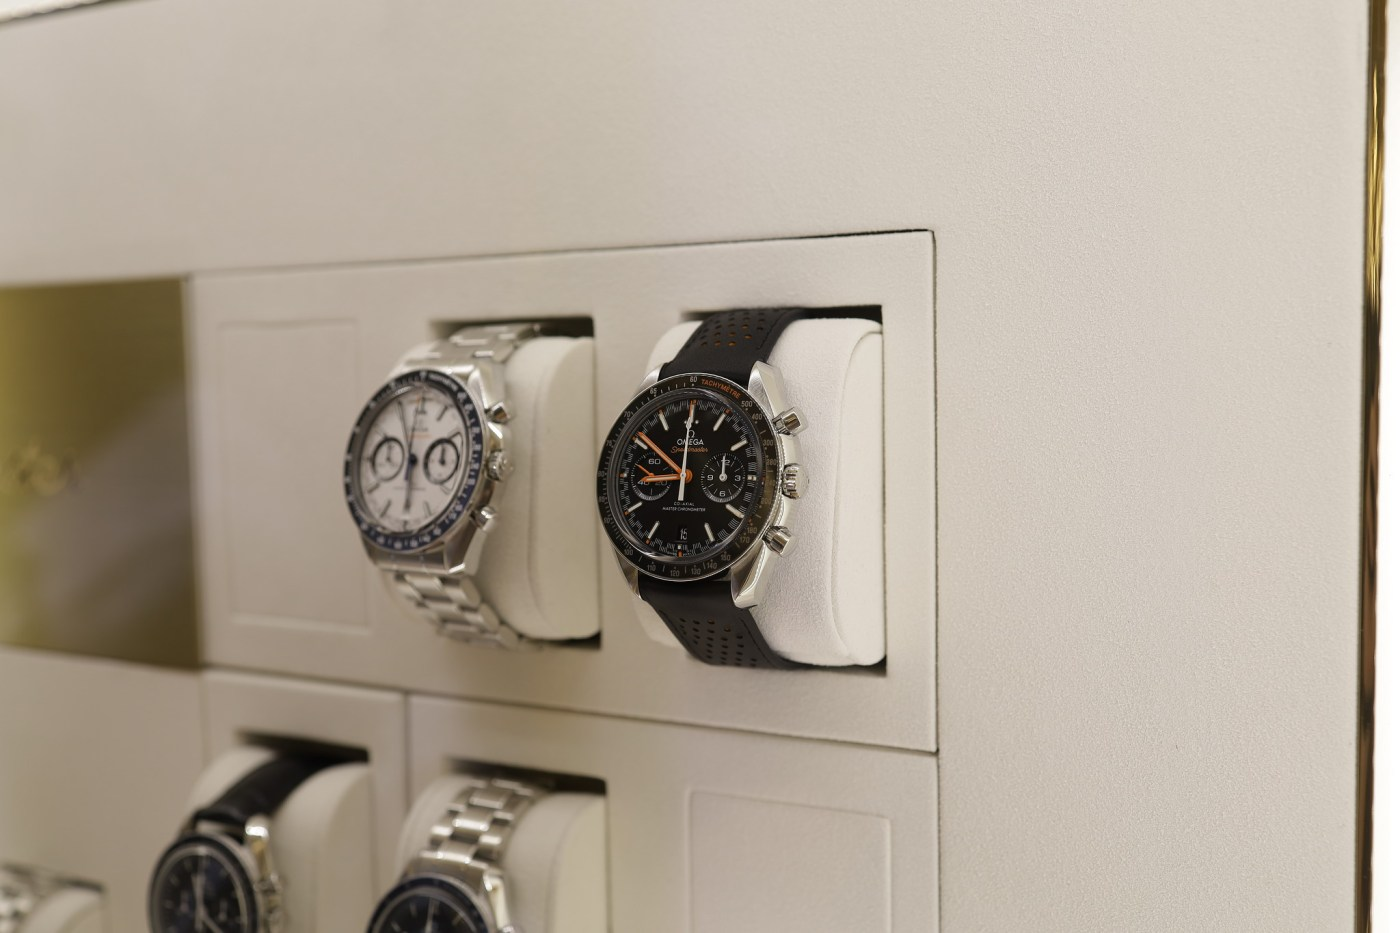 Omega Speedmasters in the case